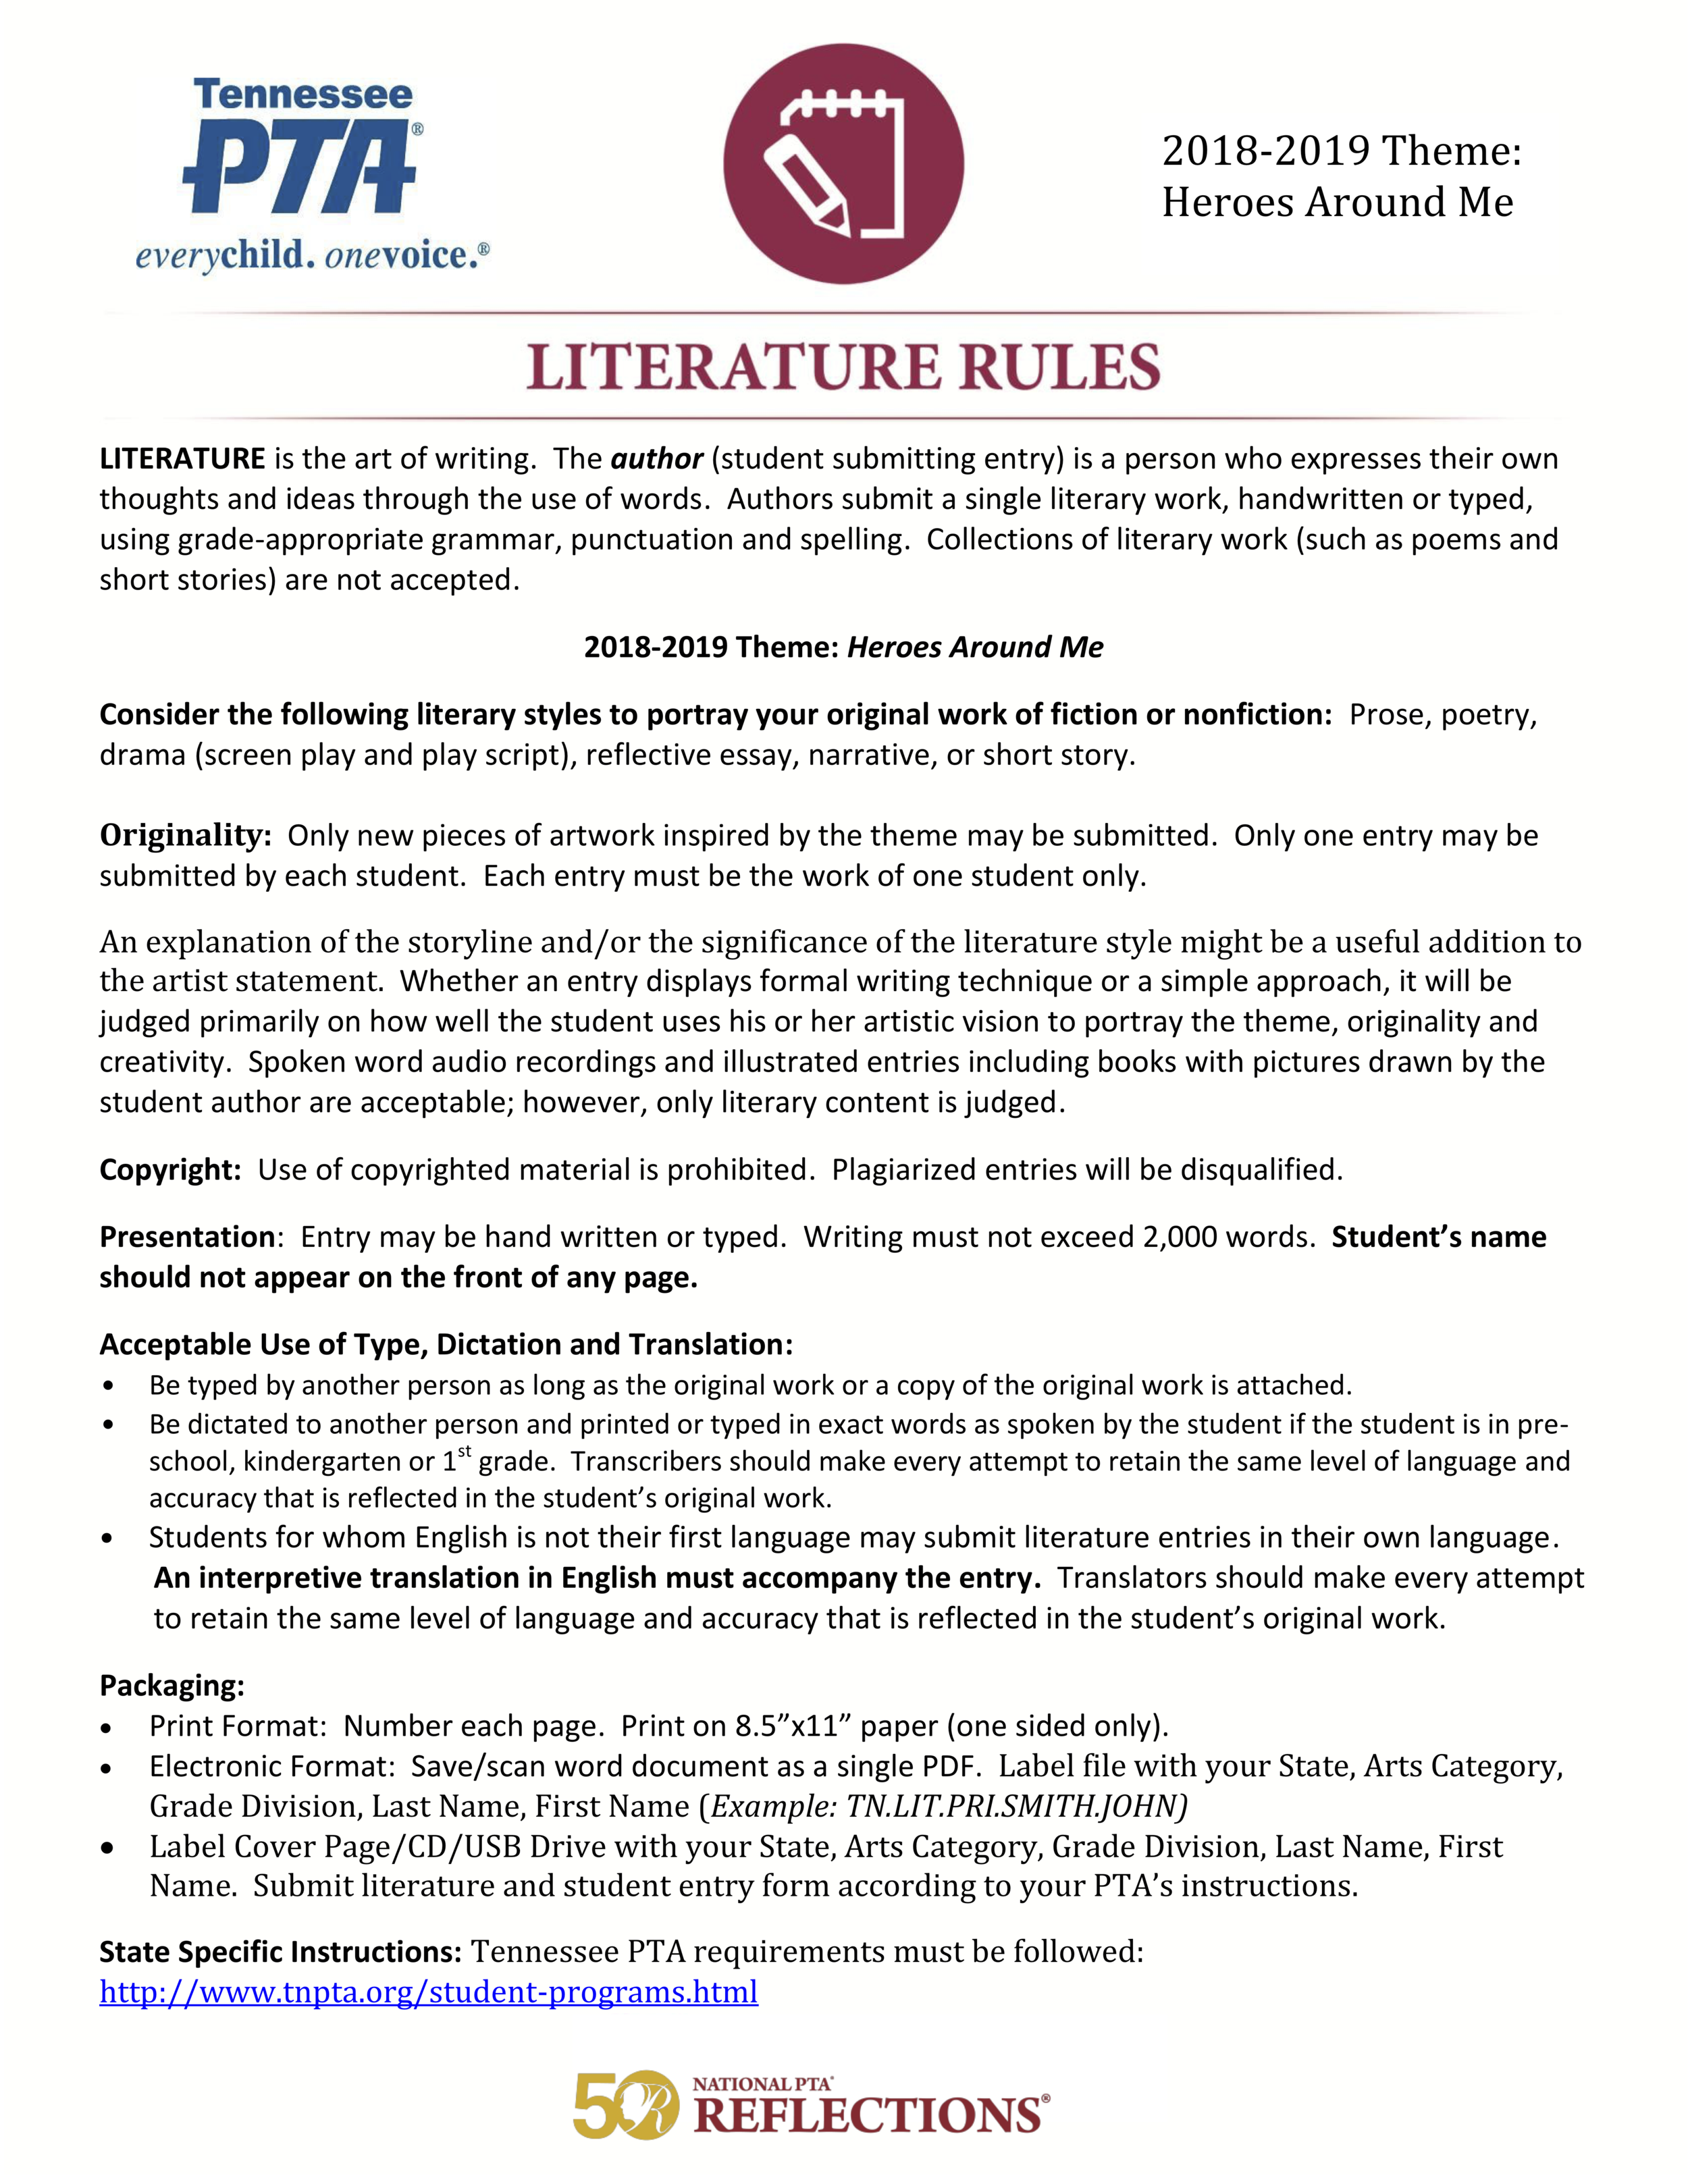 18-19 Reflections Literature Rules.png